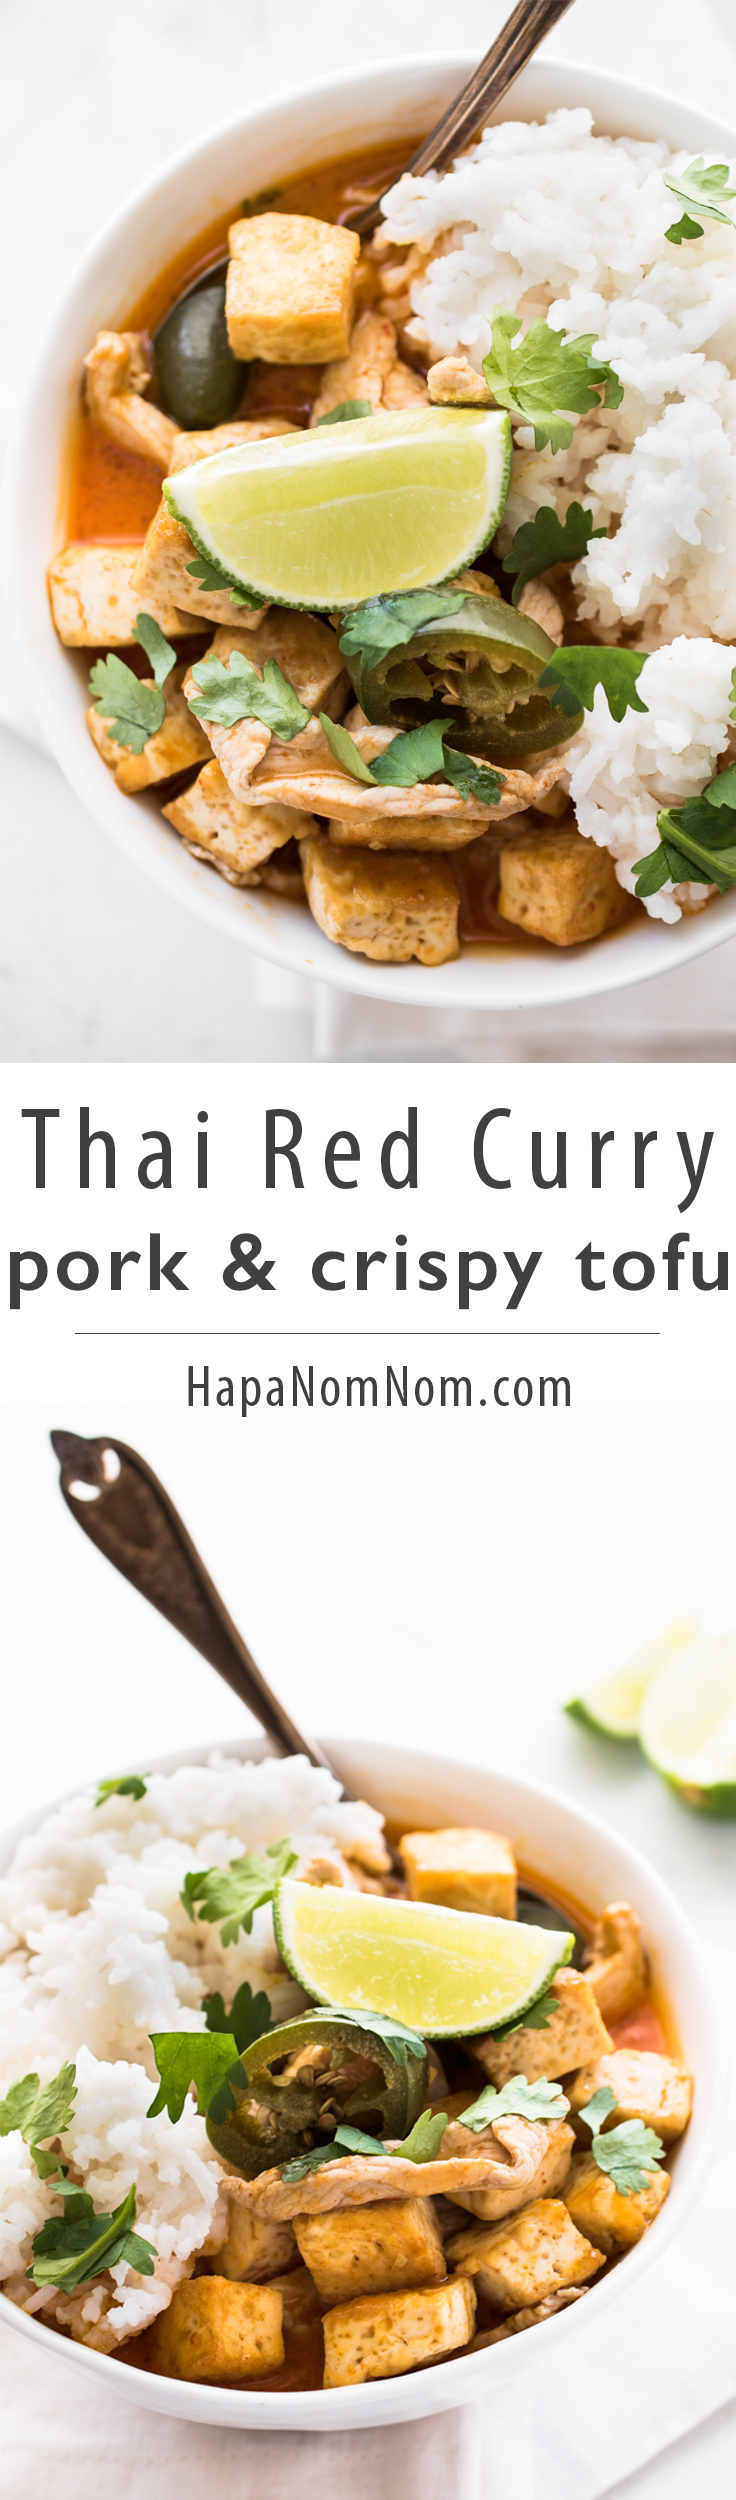 Thai-Red-Curry-Pork-and-Crispy-Tofu